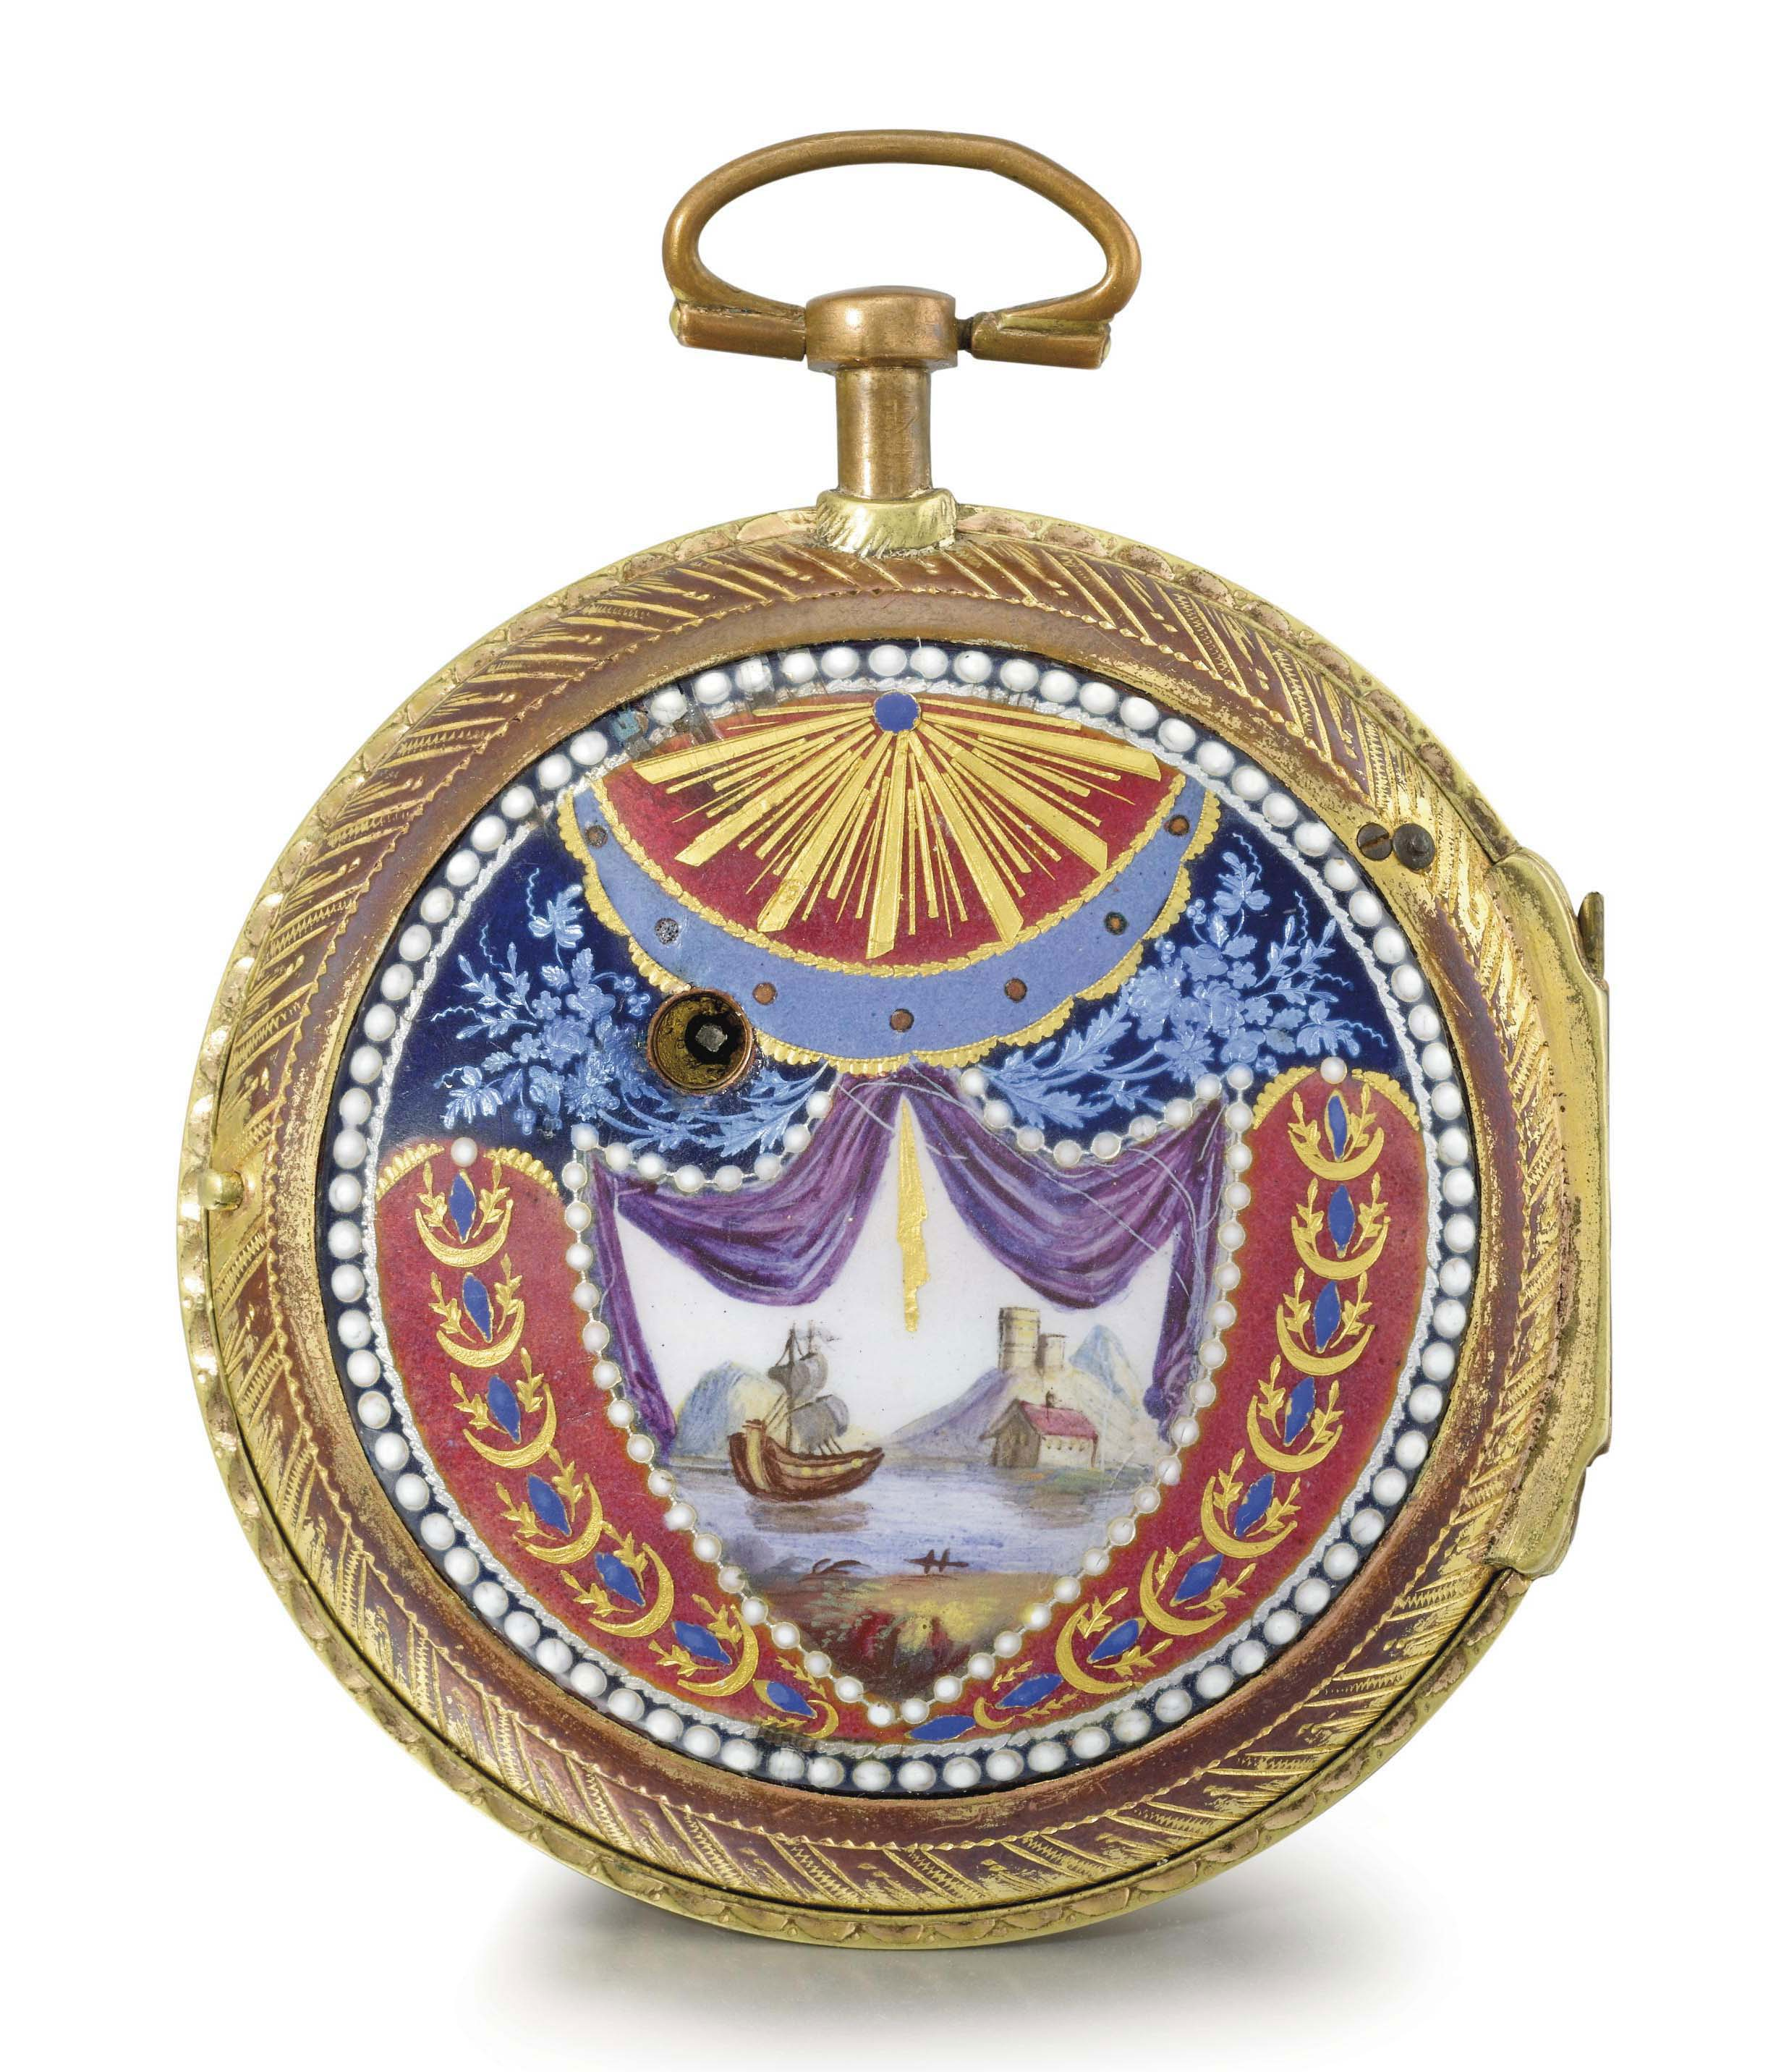 Le Roy. A rare, large and attractive gilt metal and enamel openface verge watch, made for the Turkish market